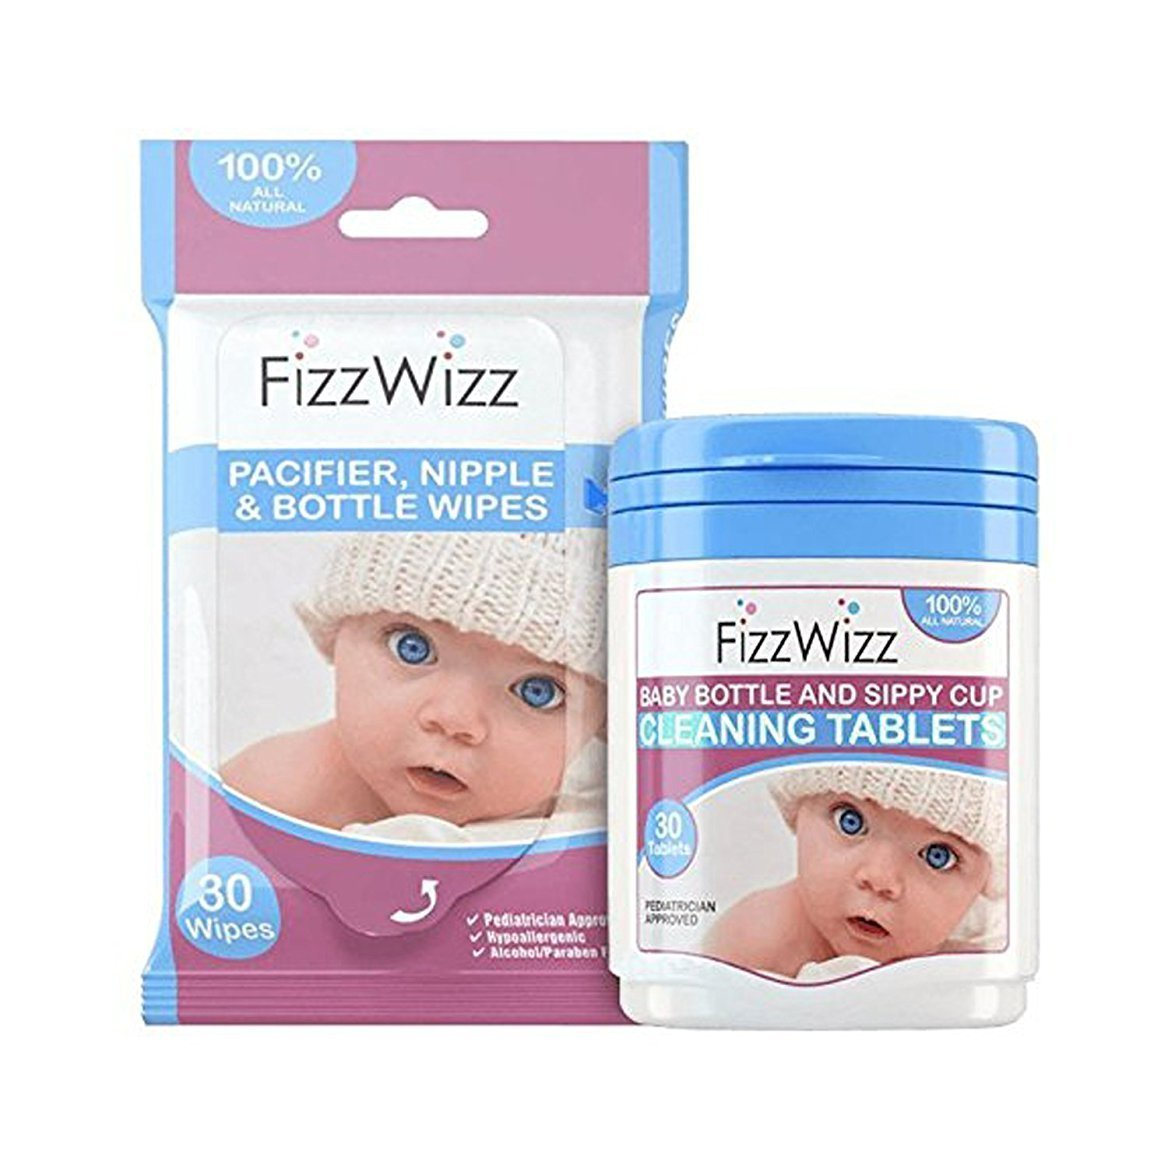 NEW On-the-Go All Natural Cleaning Tablets for Baby Bottles/Sippy Cups and FREE Pacifier Wipes by FizzWizz   B01EH2Q1GS